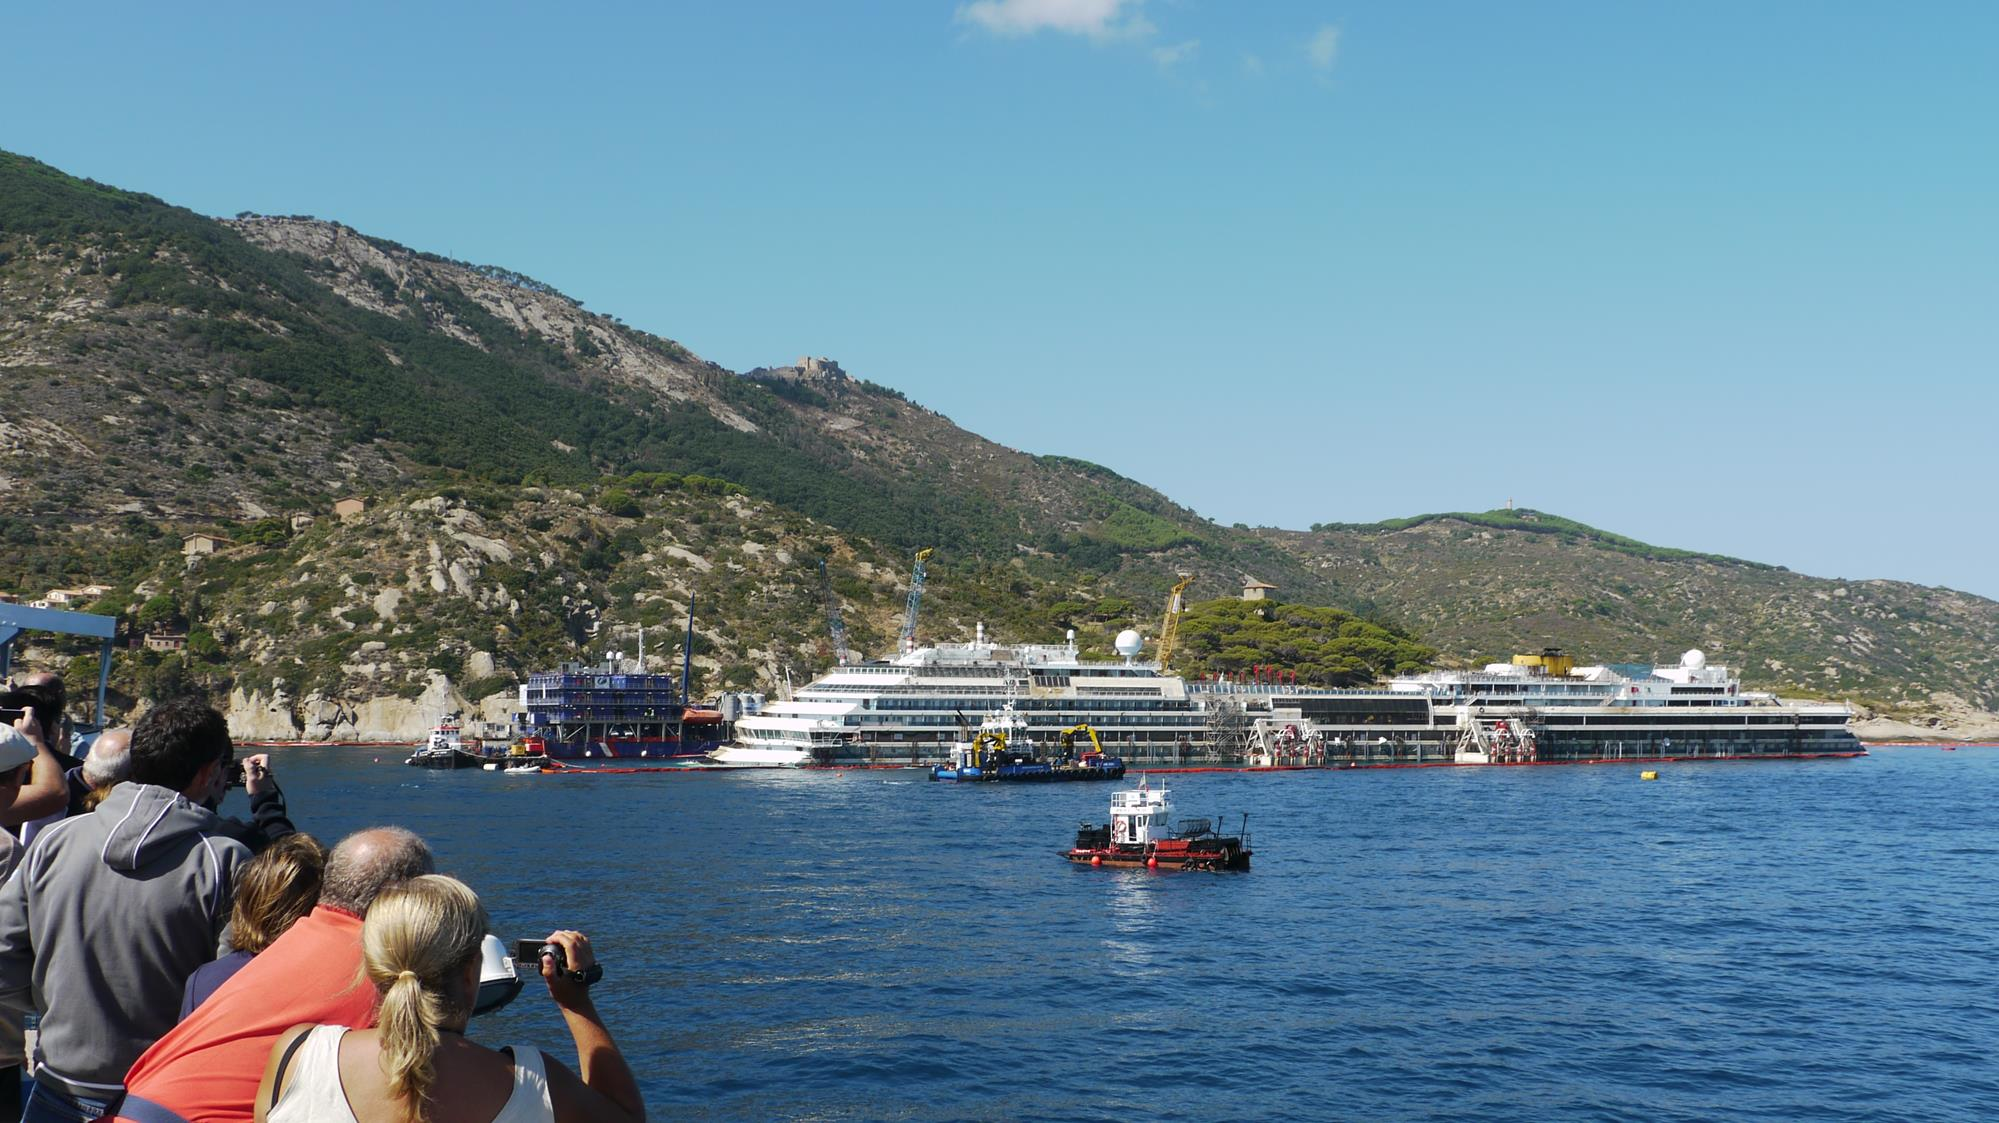 The Costa Concordia, from the ferry to Giglio